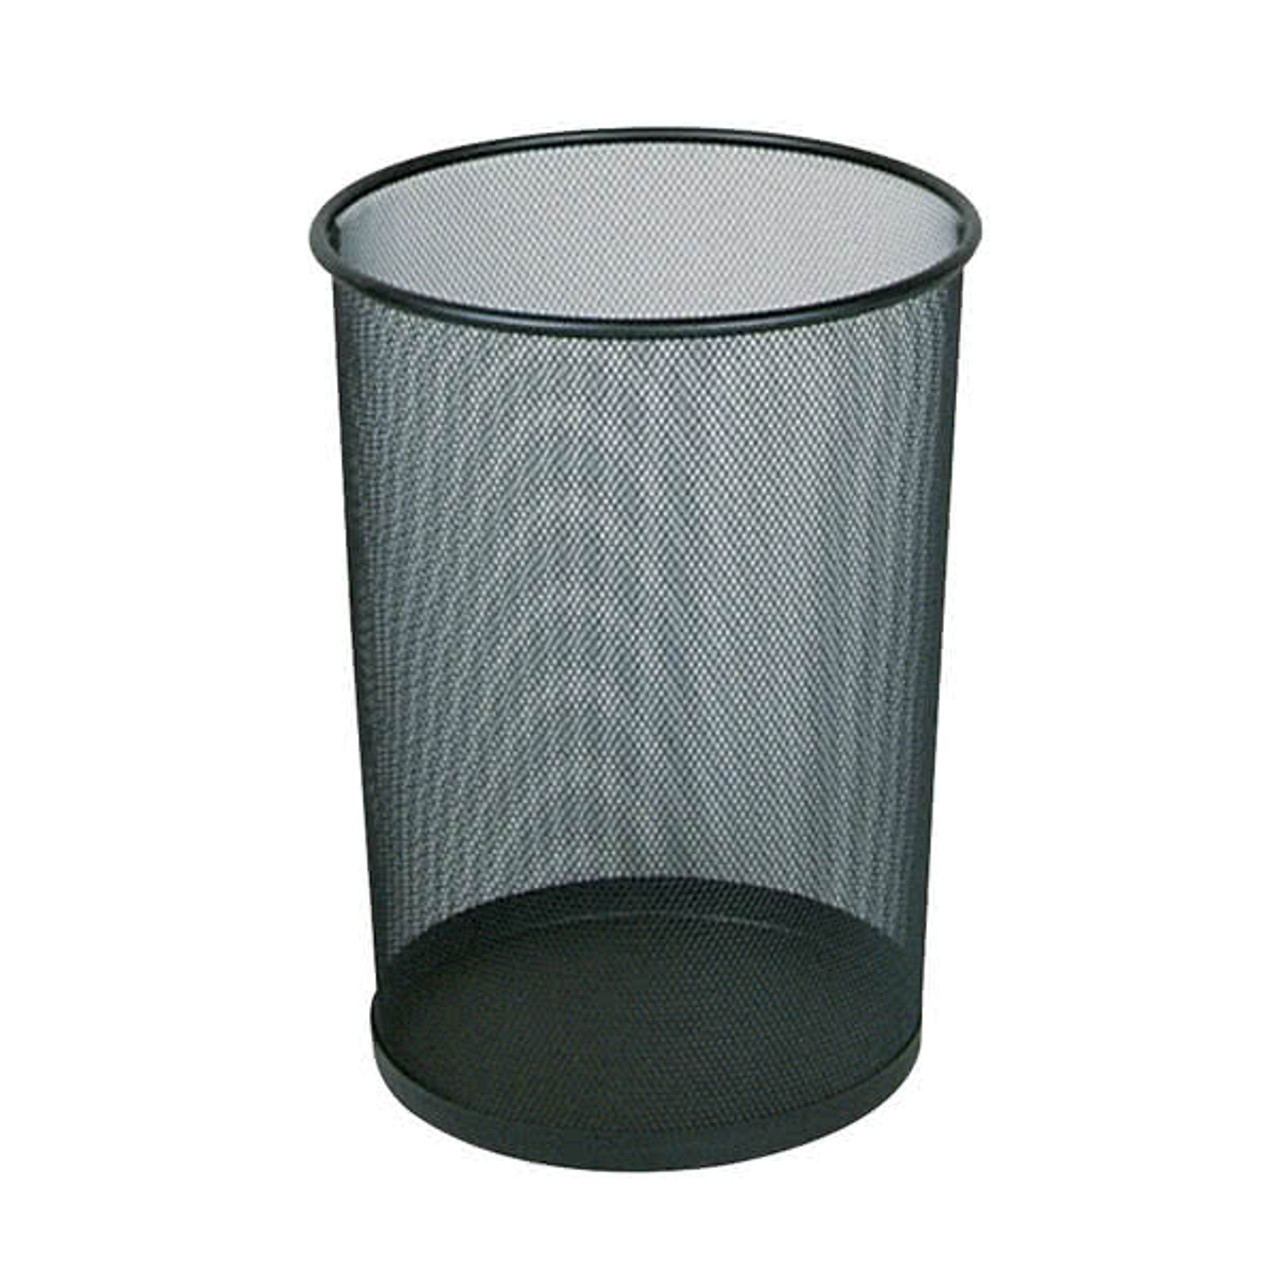 Rubbermaid Concept Collection Round - Black - FGWMB20BK